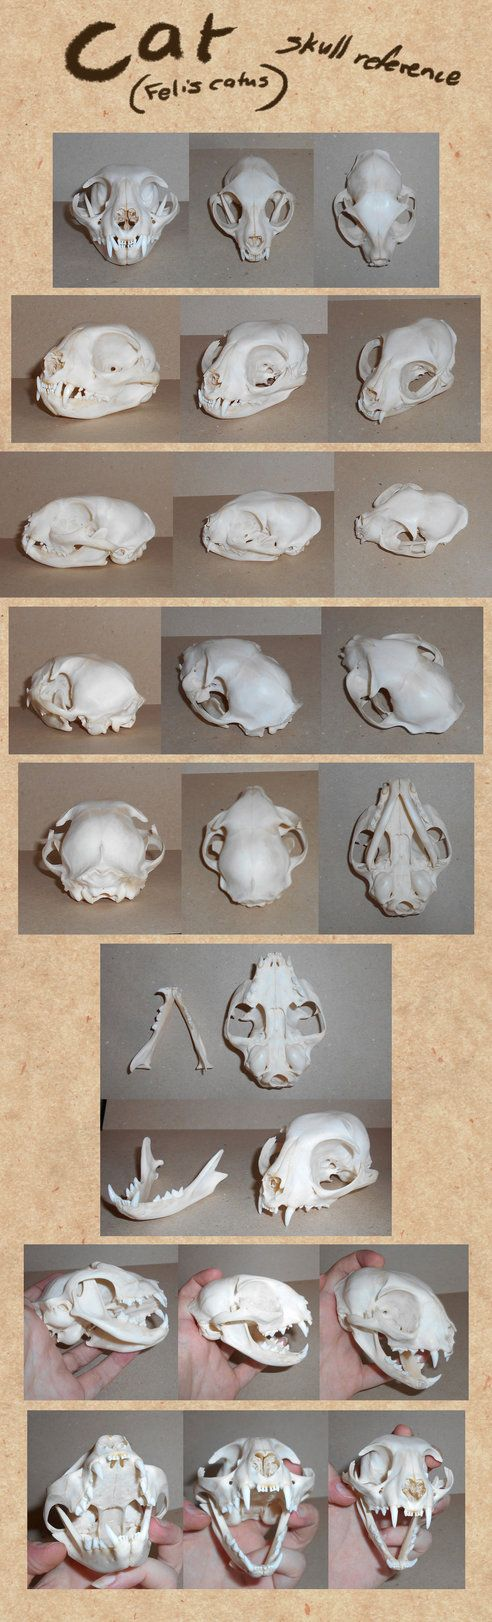 Cat skull reference by Paperiapina on DeviantArt